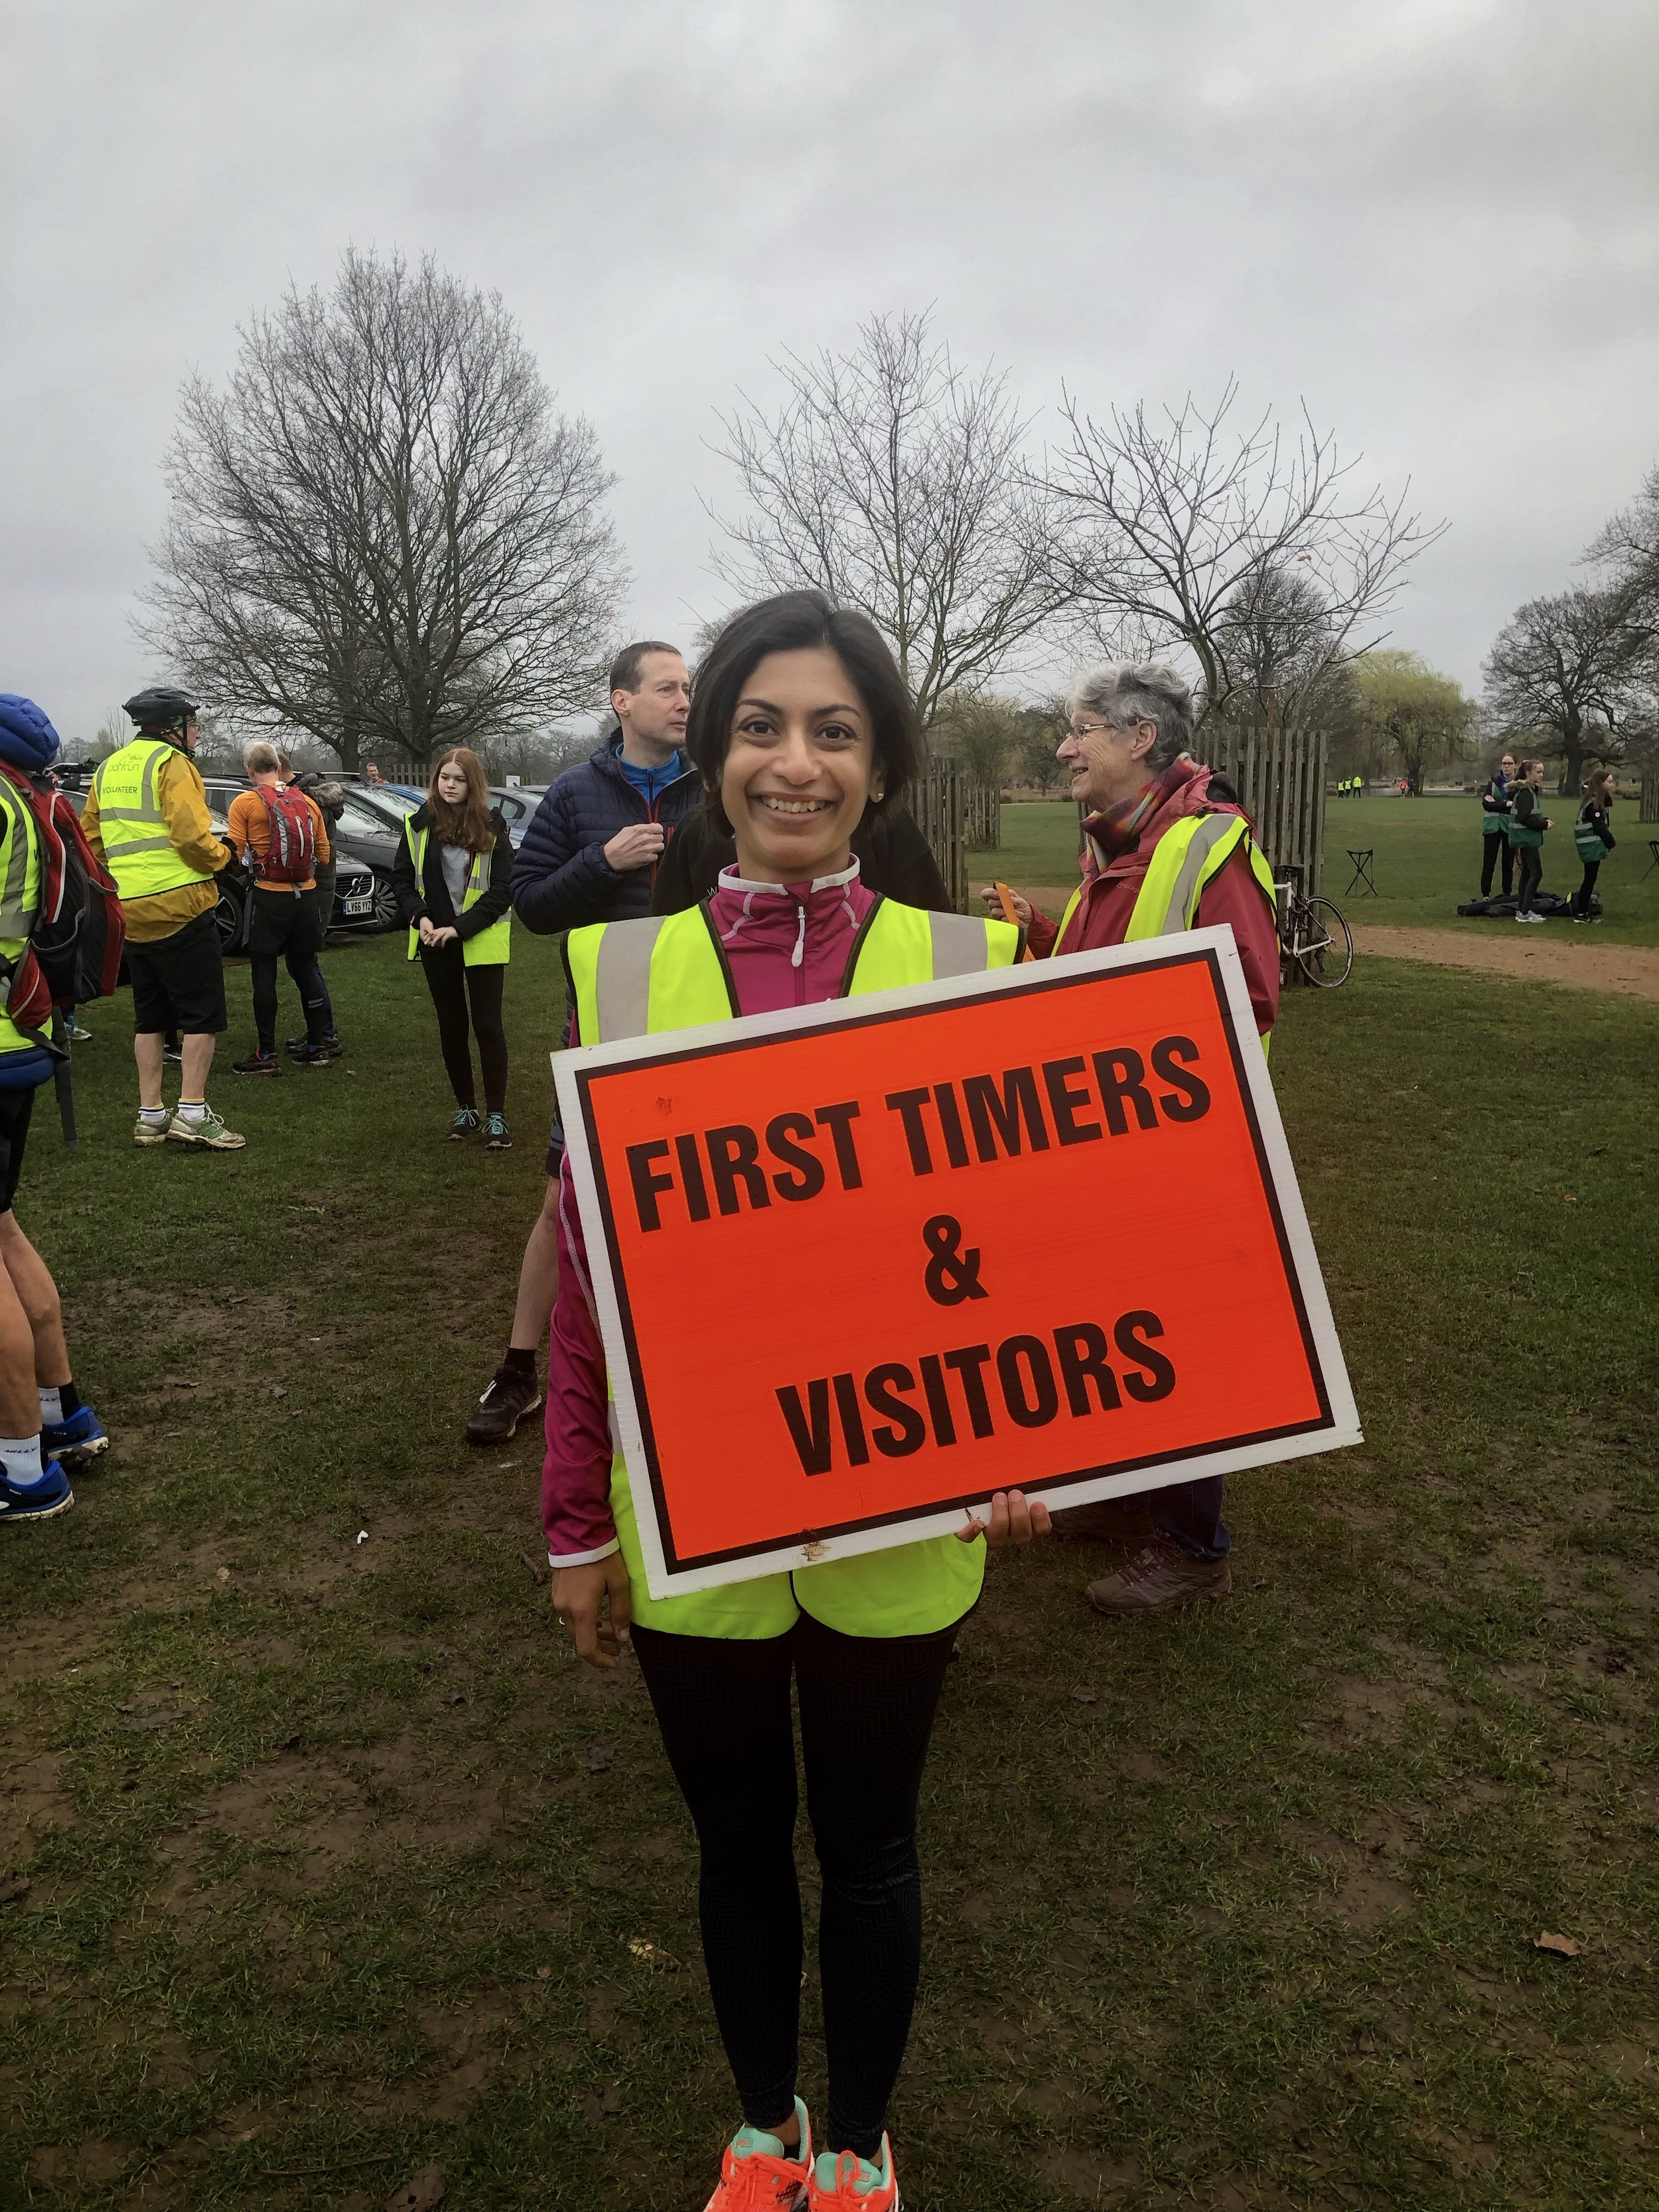 Holding the placard for briefing new runners and visitors. Communication breaks down barriers! (Image: Sumi Sarma)